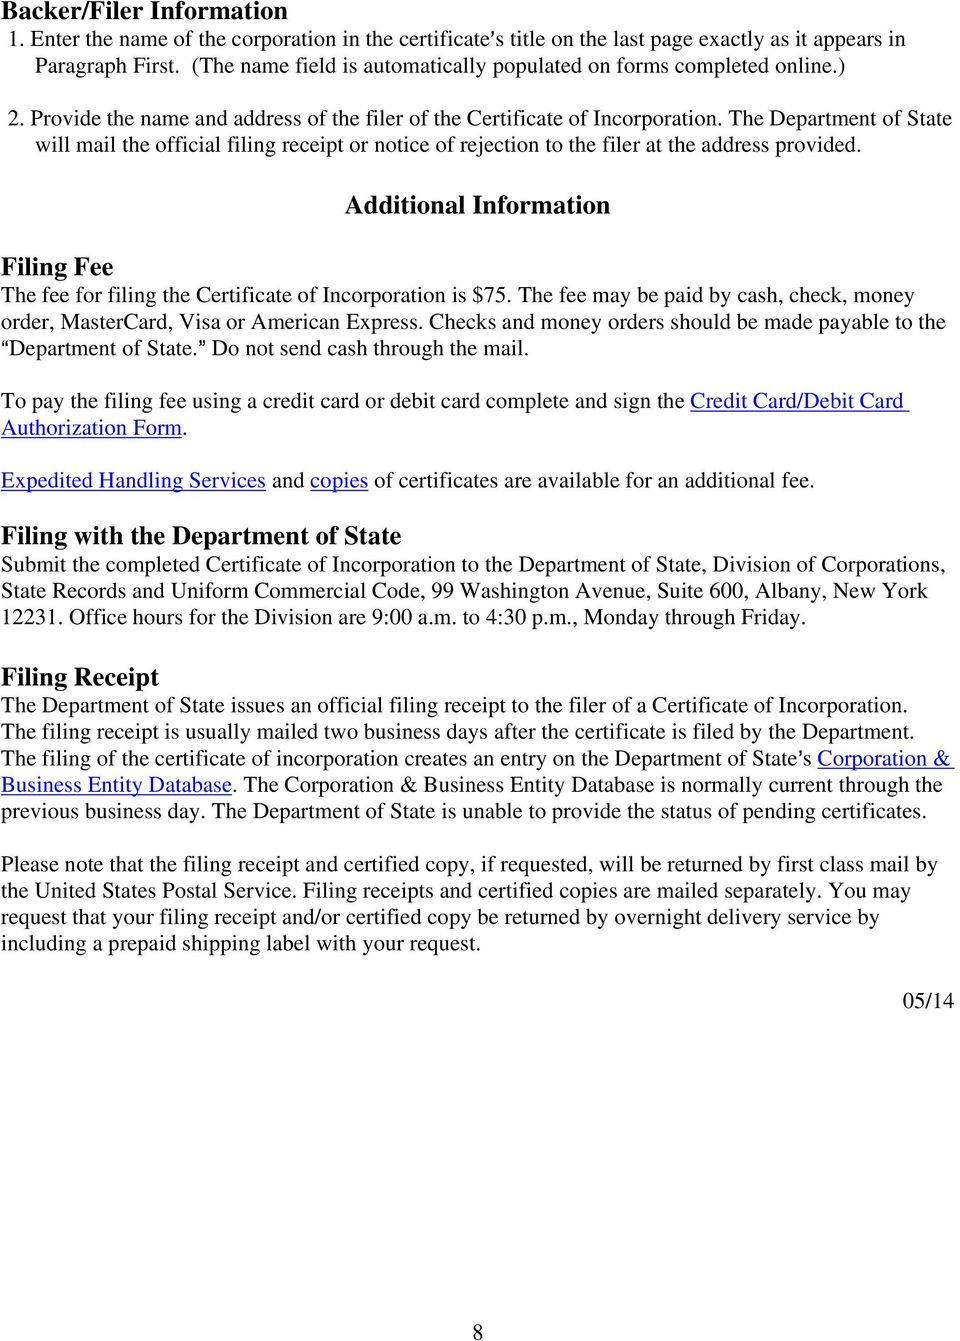 The Department of State will mail the official filing receipt or notice of rejection to the filer at the address provided.